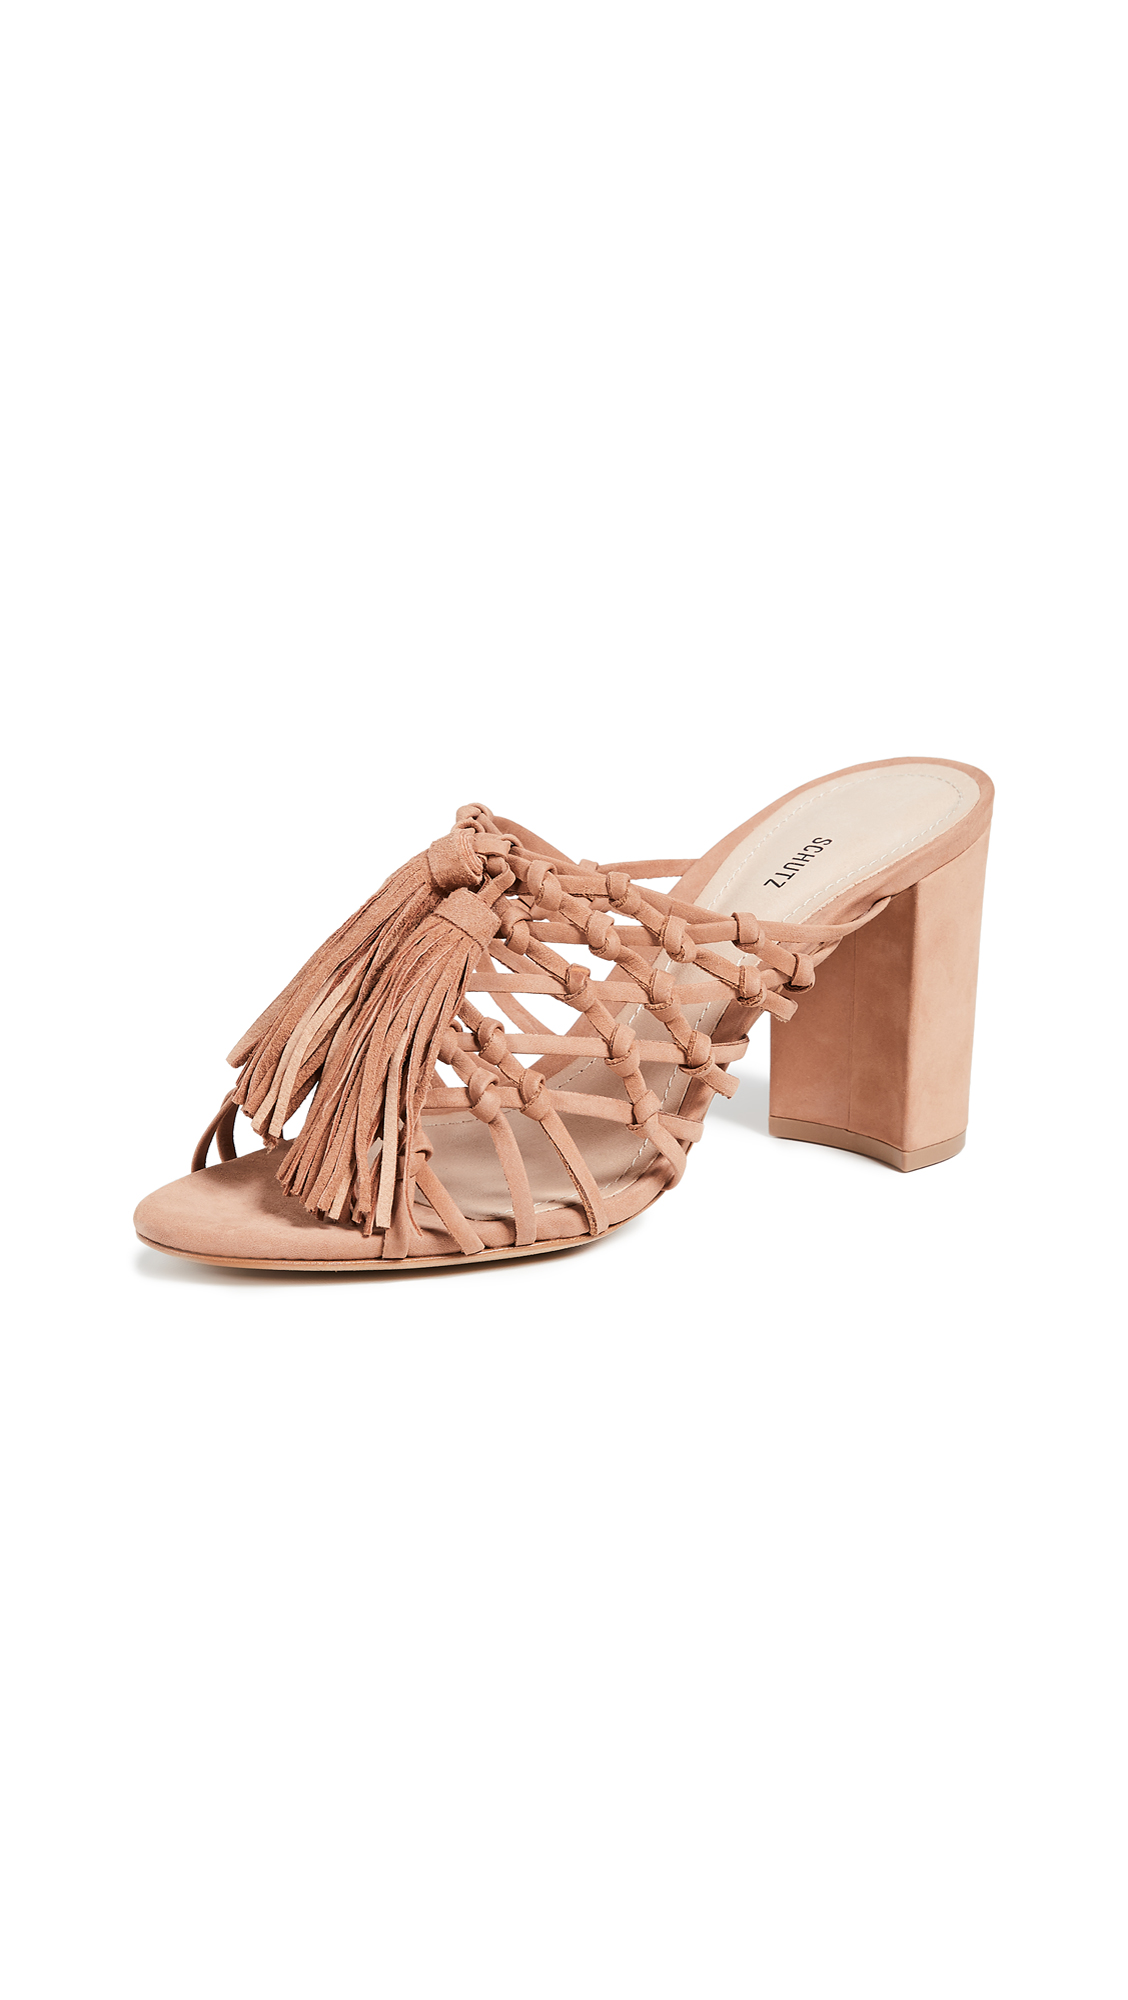 Schutz Emily Tassel Sandals - Toasted Nut